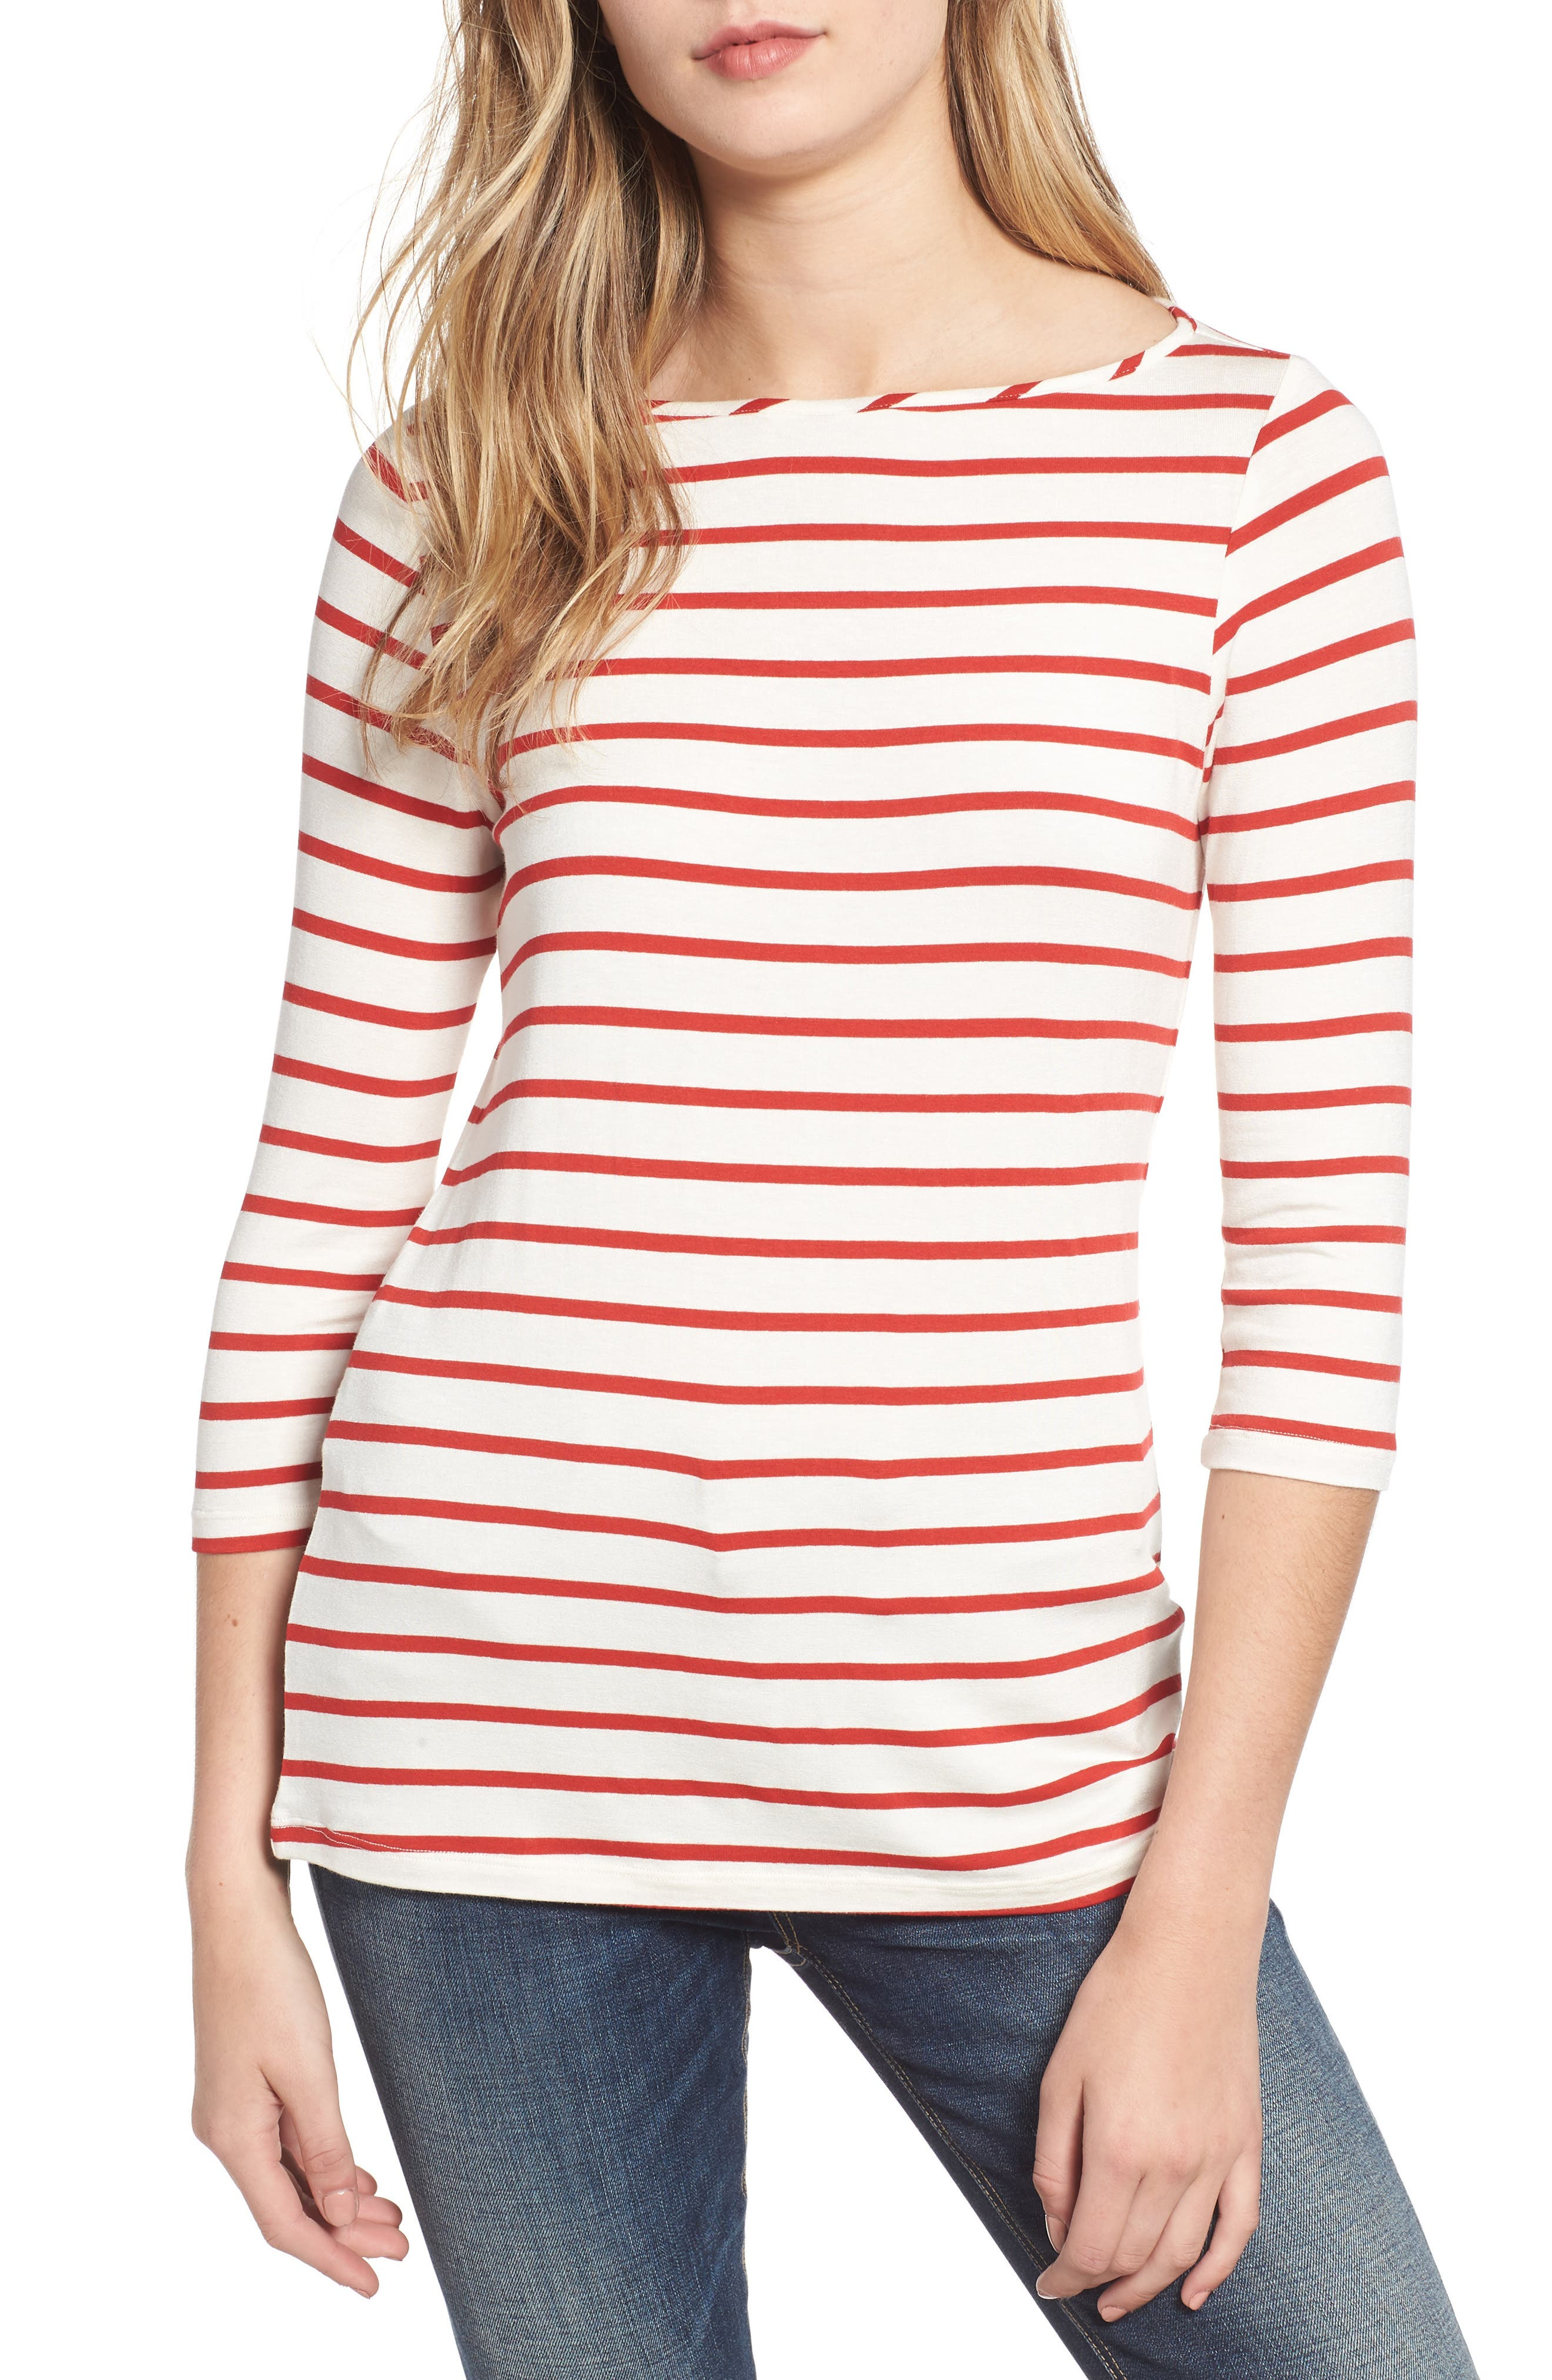 AMOUR VERT, Francoise Stretch Jersey Top, Main thumbnail 1, color, POPPY STRIPE